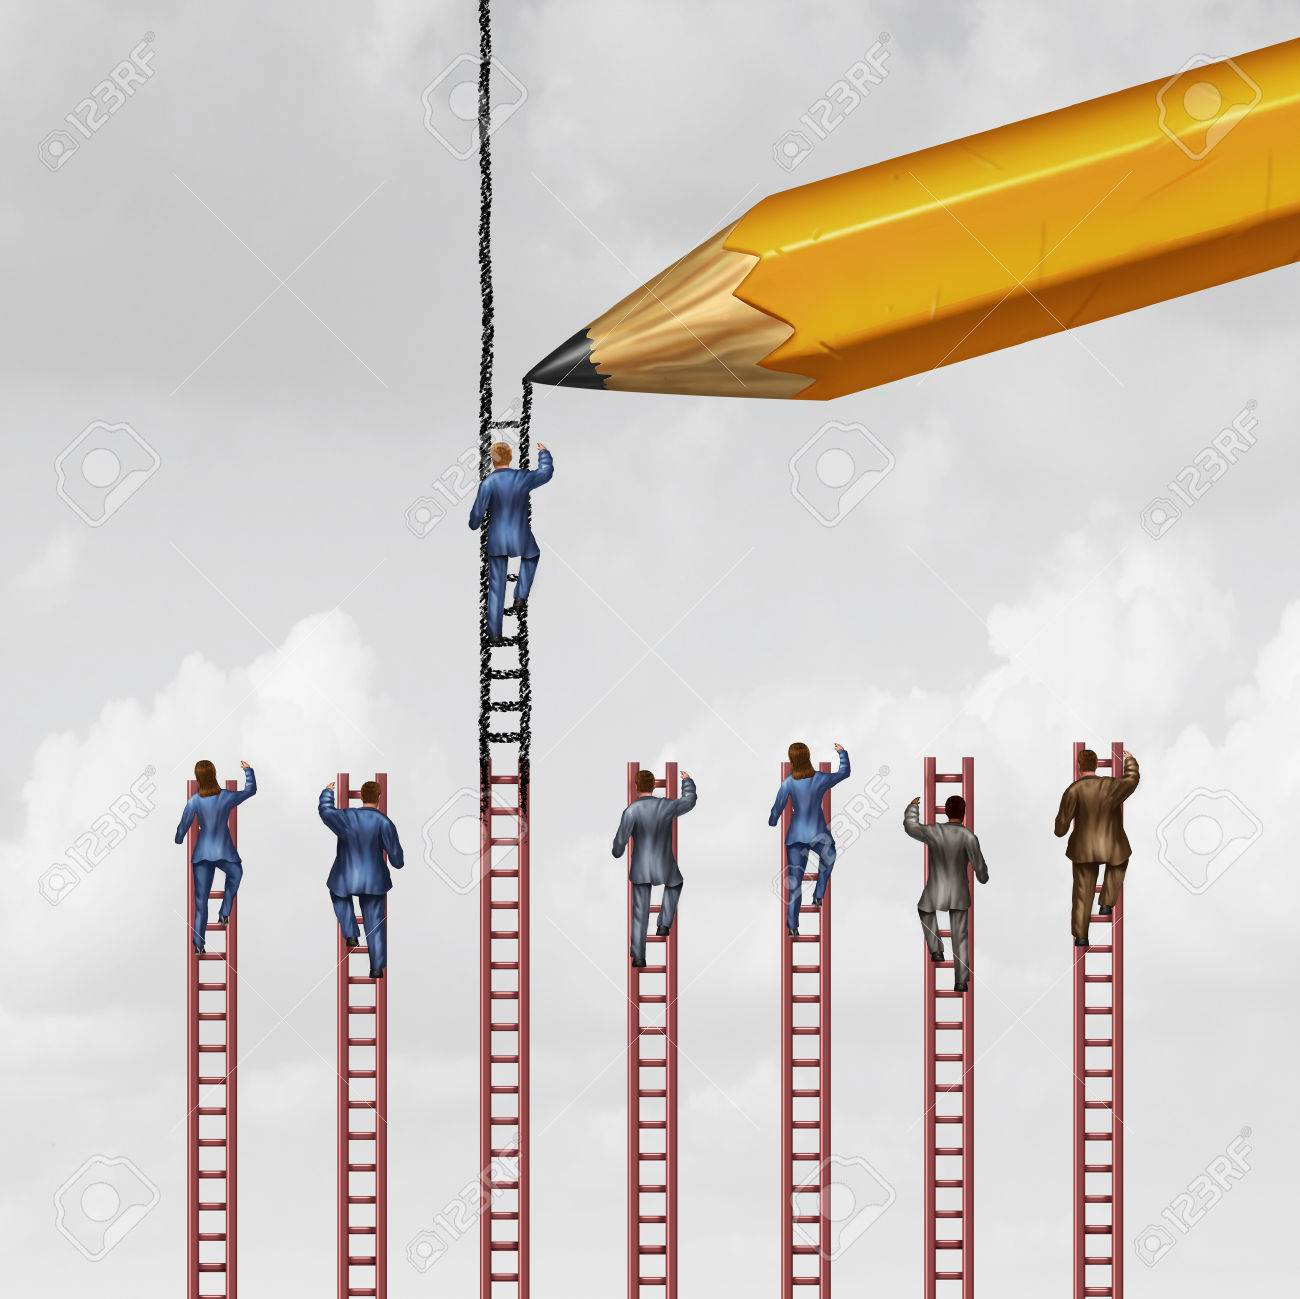 Career advice concept and business success support symbol as a group of businessmen and businesswomen climbing limited ladders but one individual that is helped by a pencil extending opportunity with 3D illustration elements. Stock Illustration - 60688197